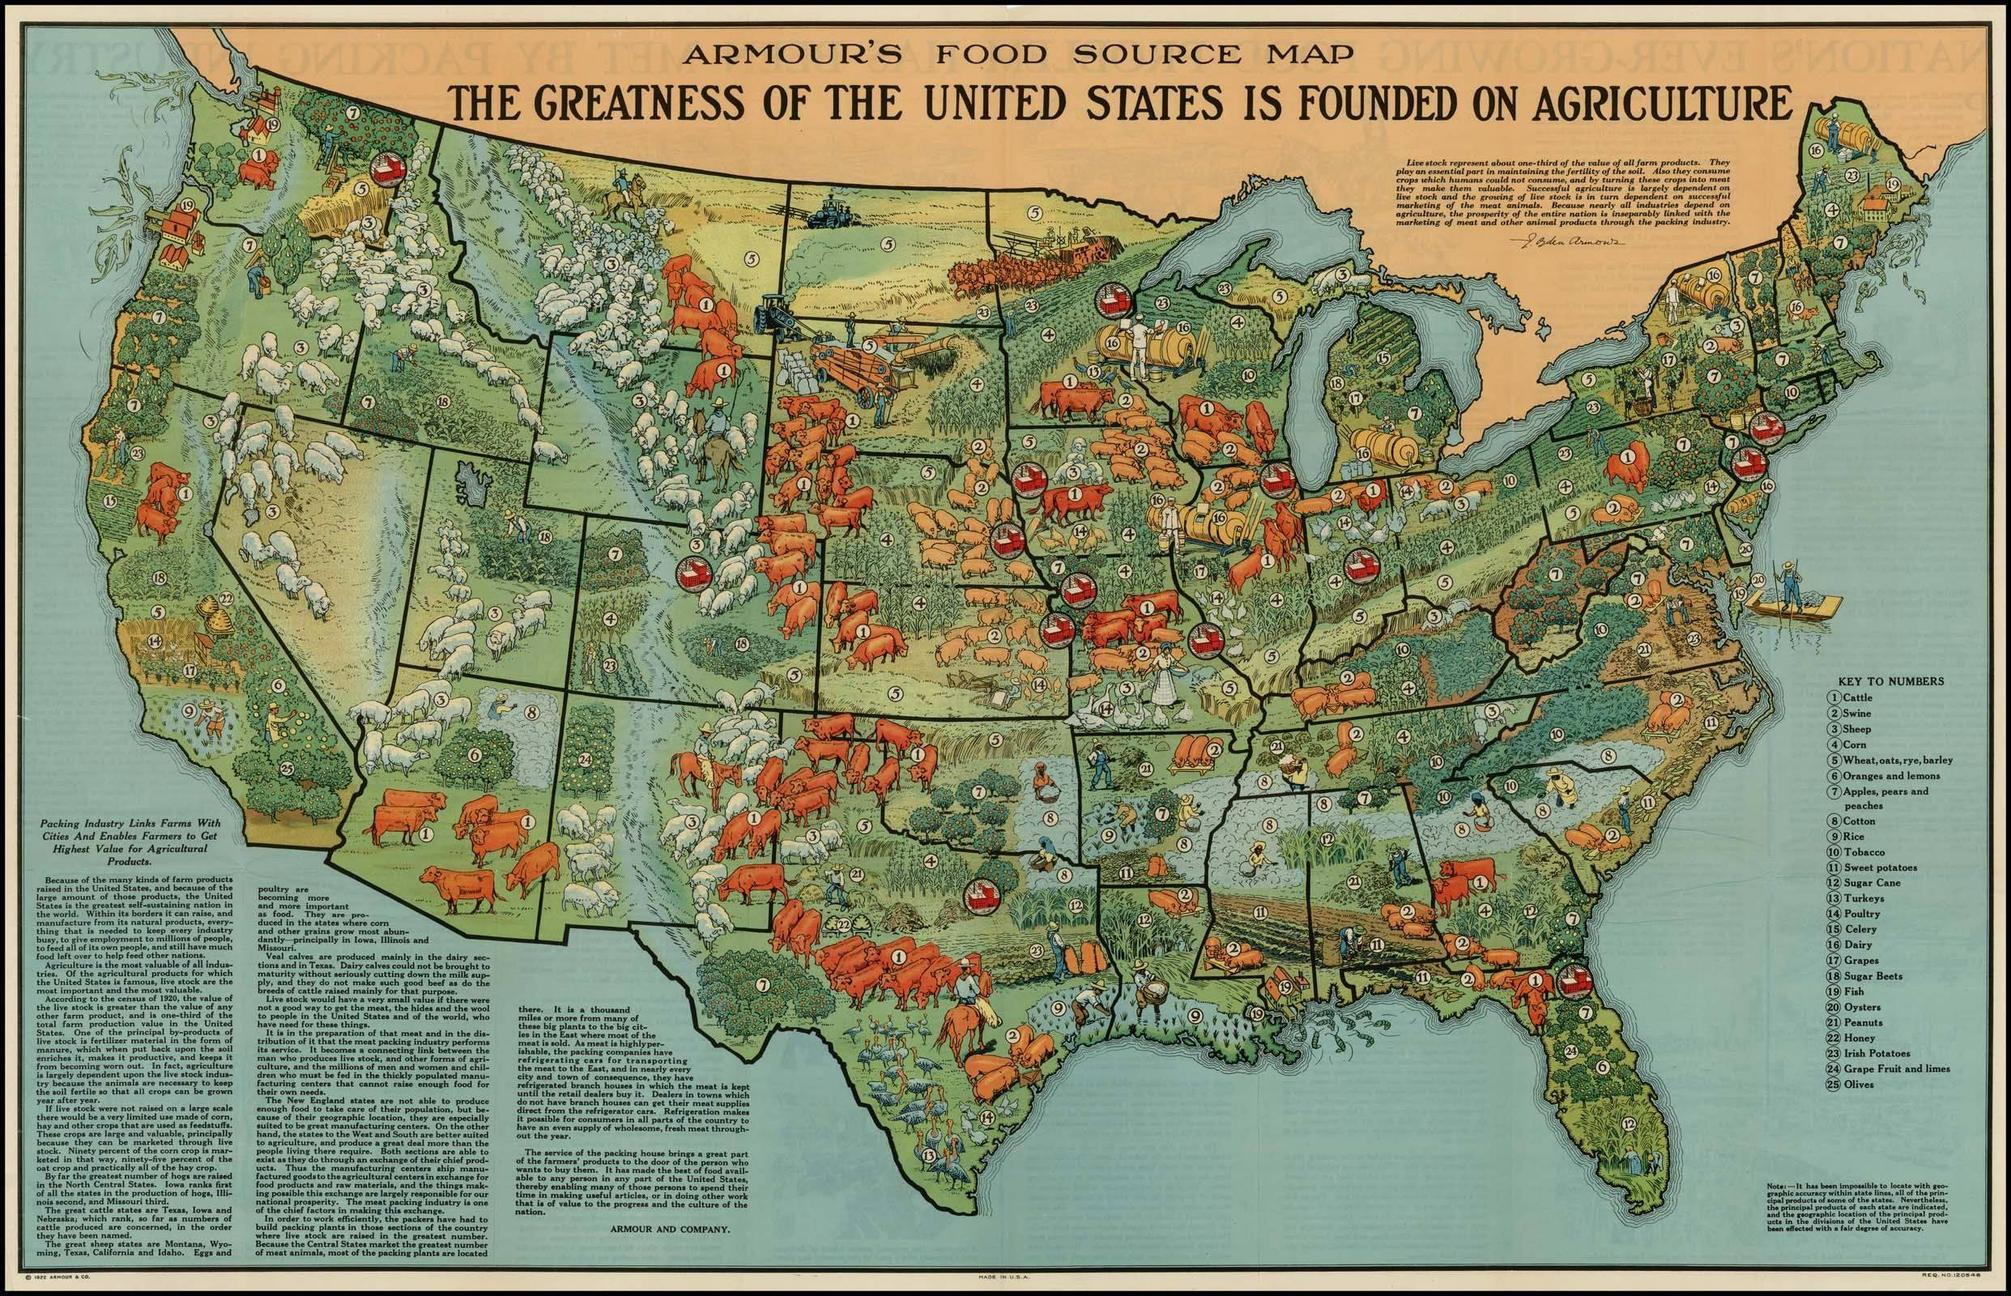 Maps That Explain Food In America Voxcom - How old is the united states of america